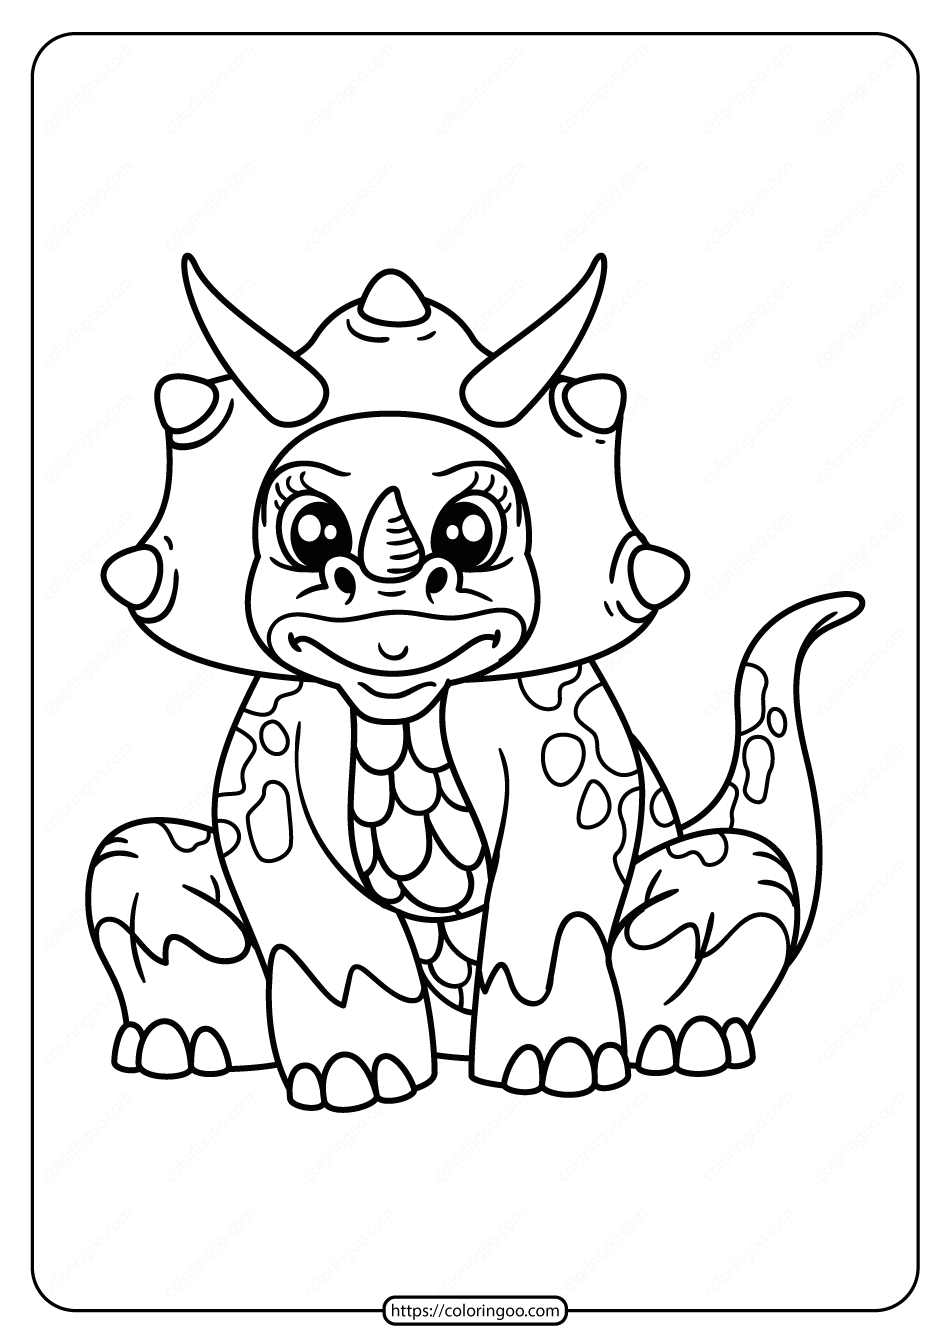 coloring pages printable free free printable moana coloring pages activity sheets for free pages printable coloring